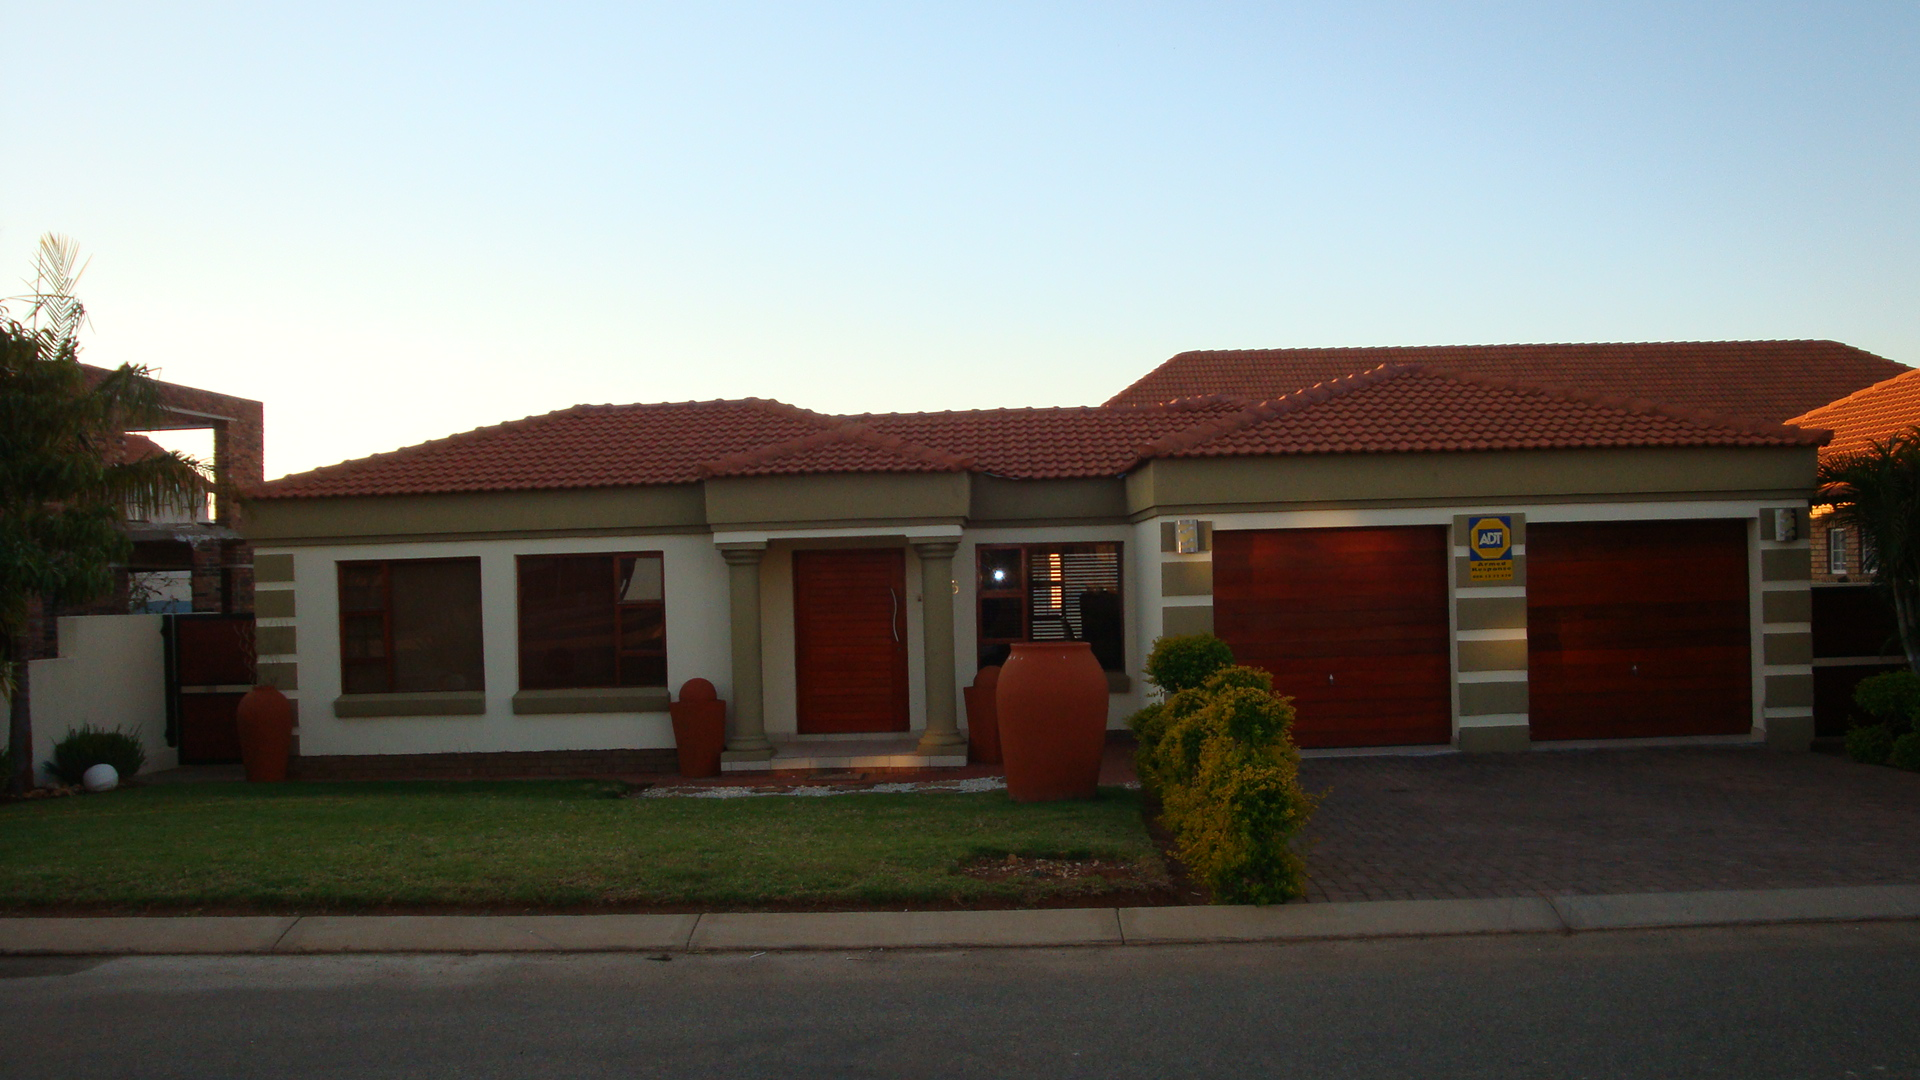 4 Bedroom House For Sale In Polokwane